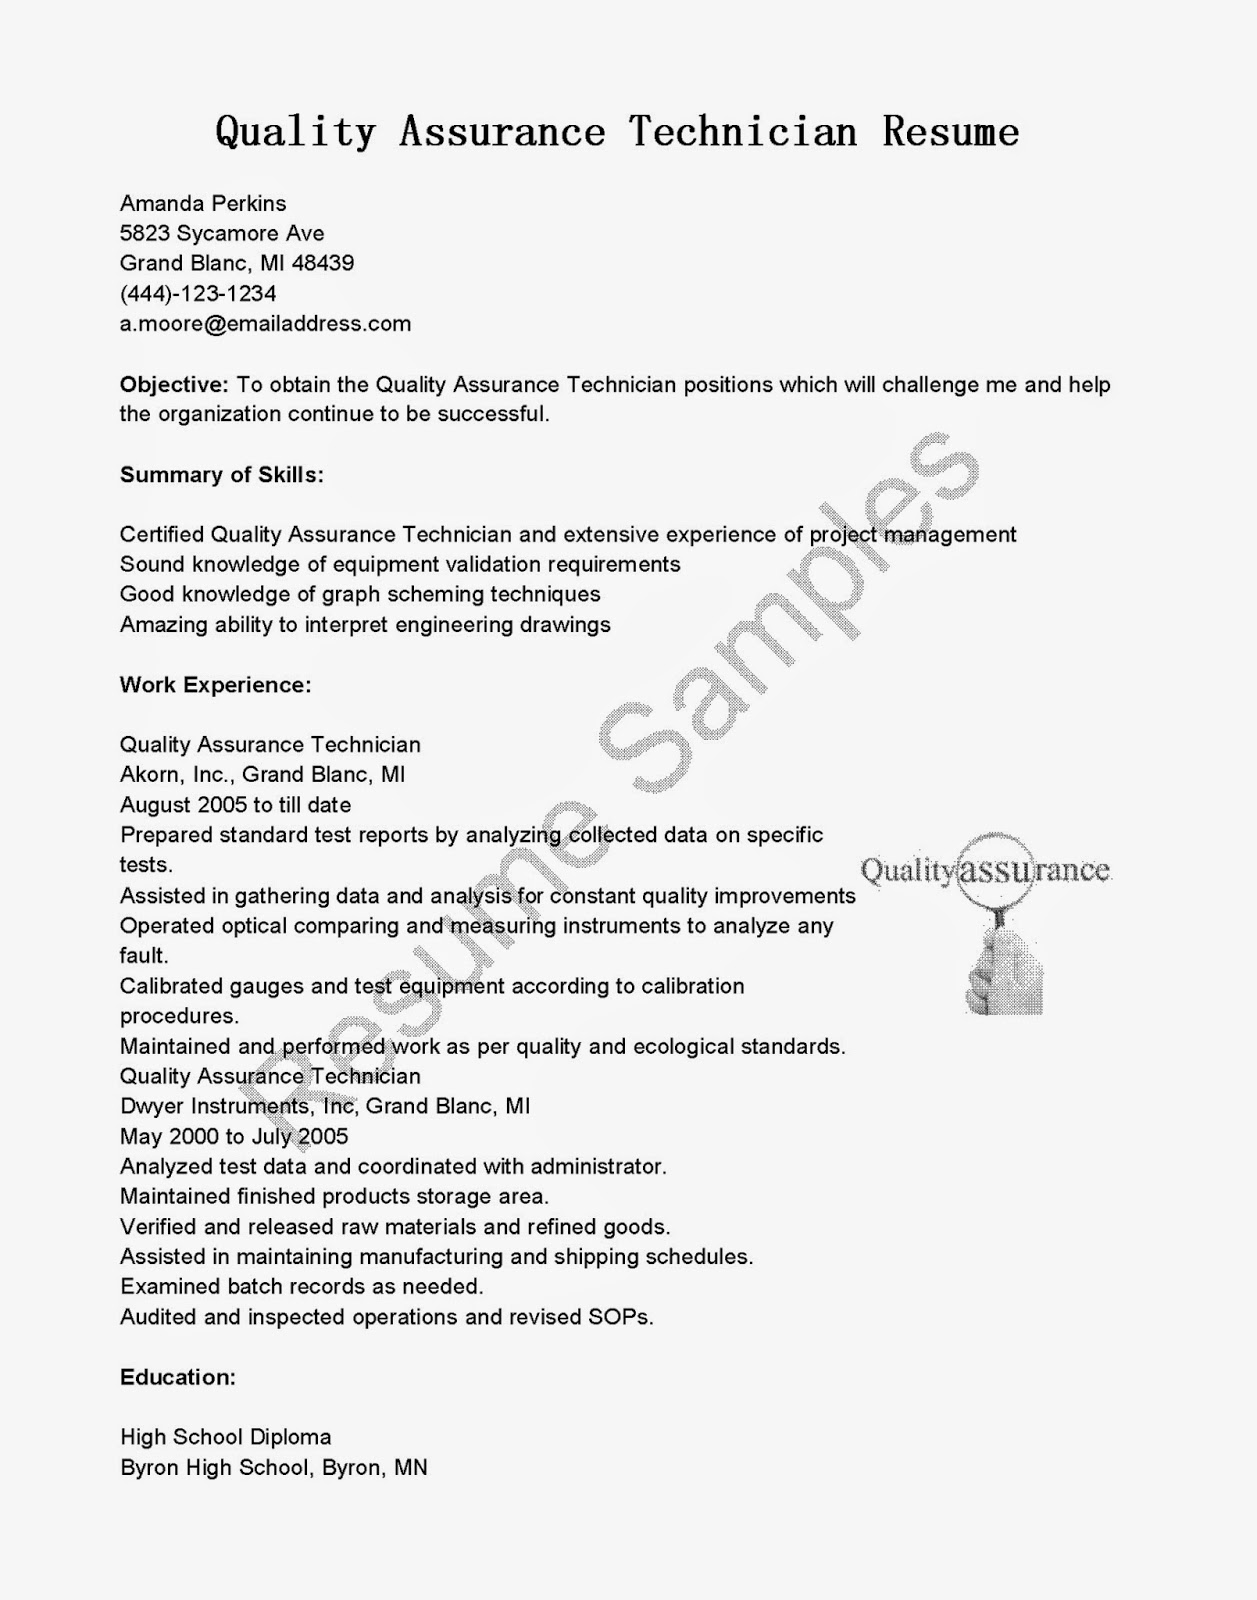 cover letter games tester ps game tester ps domed thumbsticks video game tester sample resume